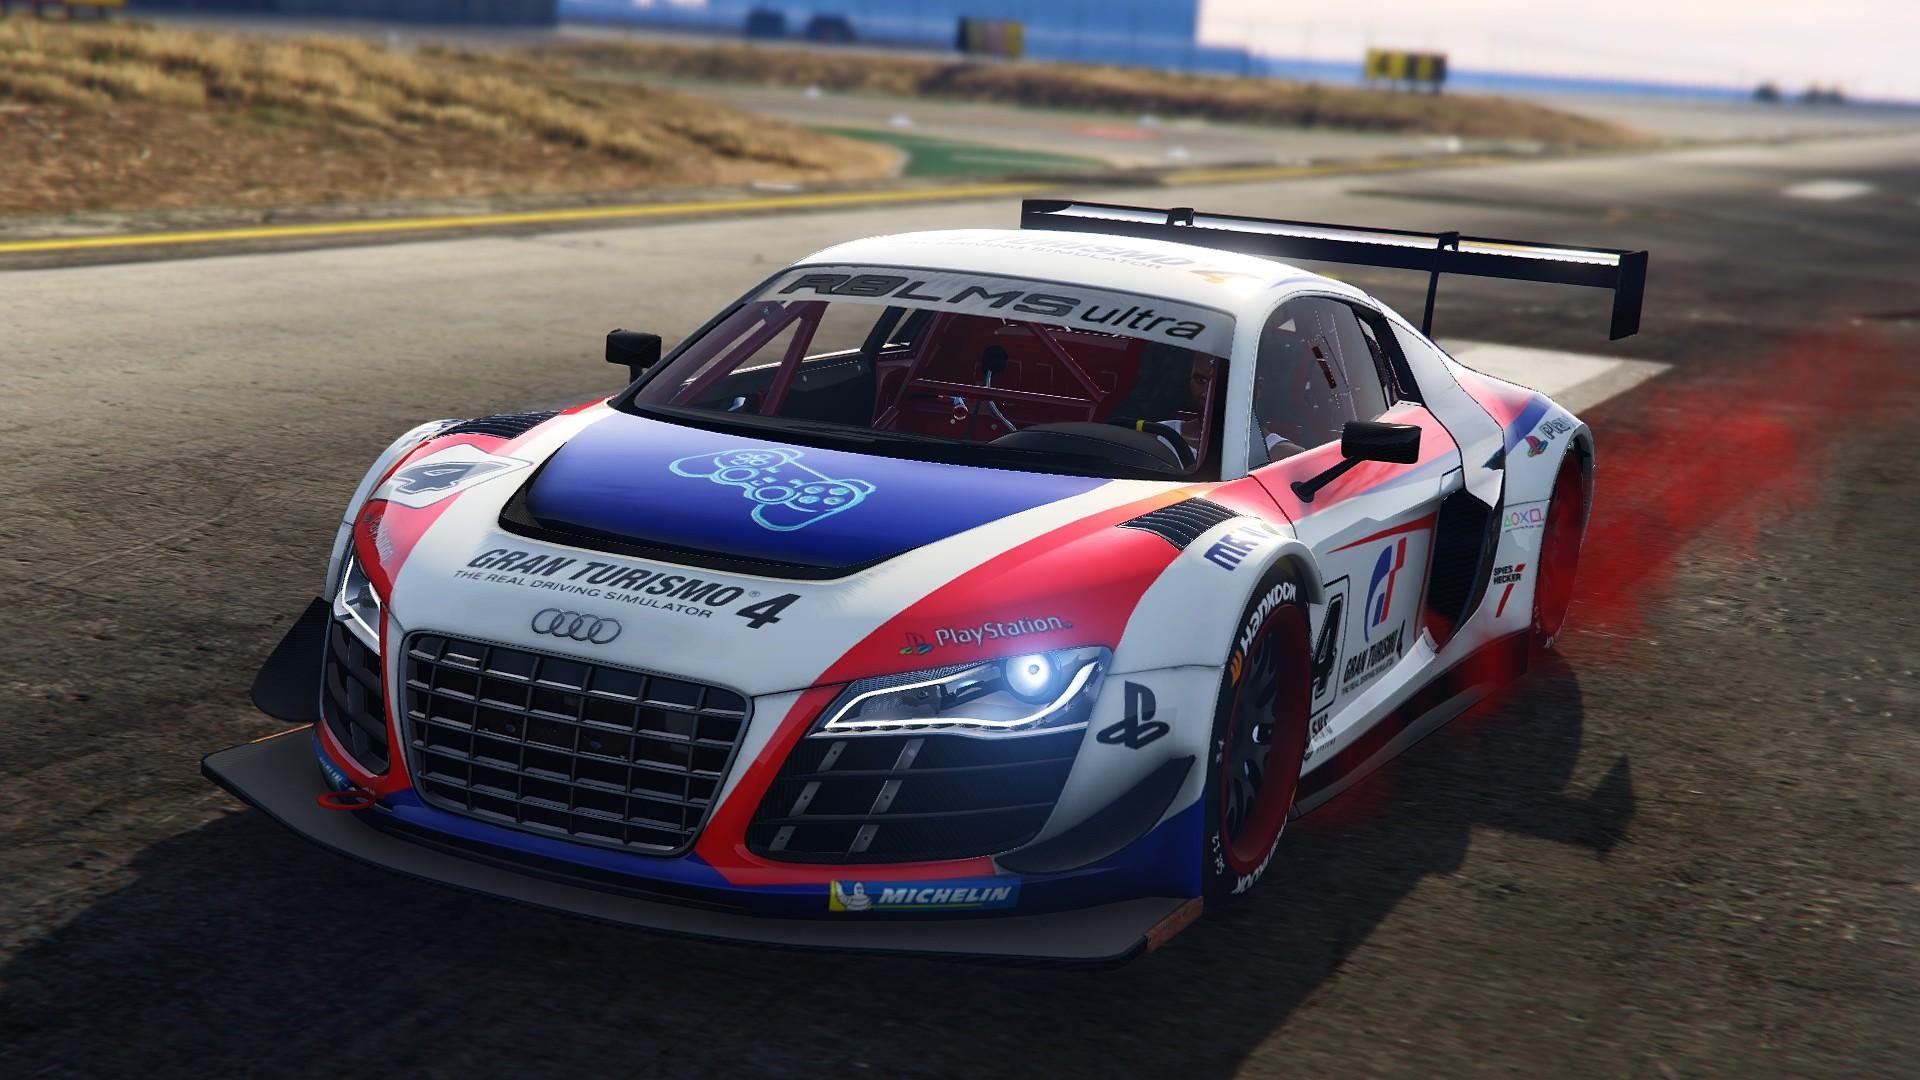 audi r8 lms ultra racecar add on gta5. Black Bedroom Furniture Sets. Home Design Ideas